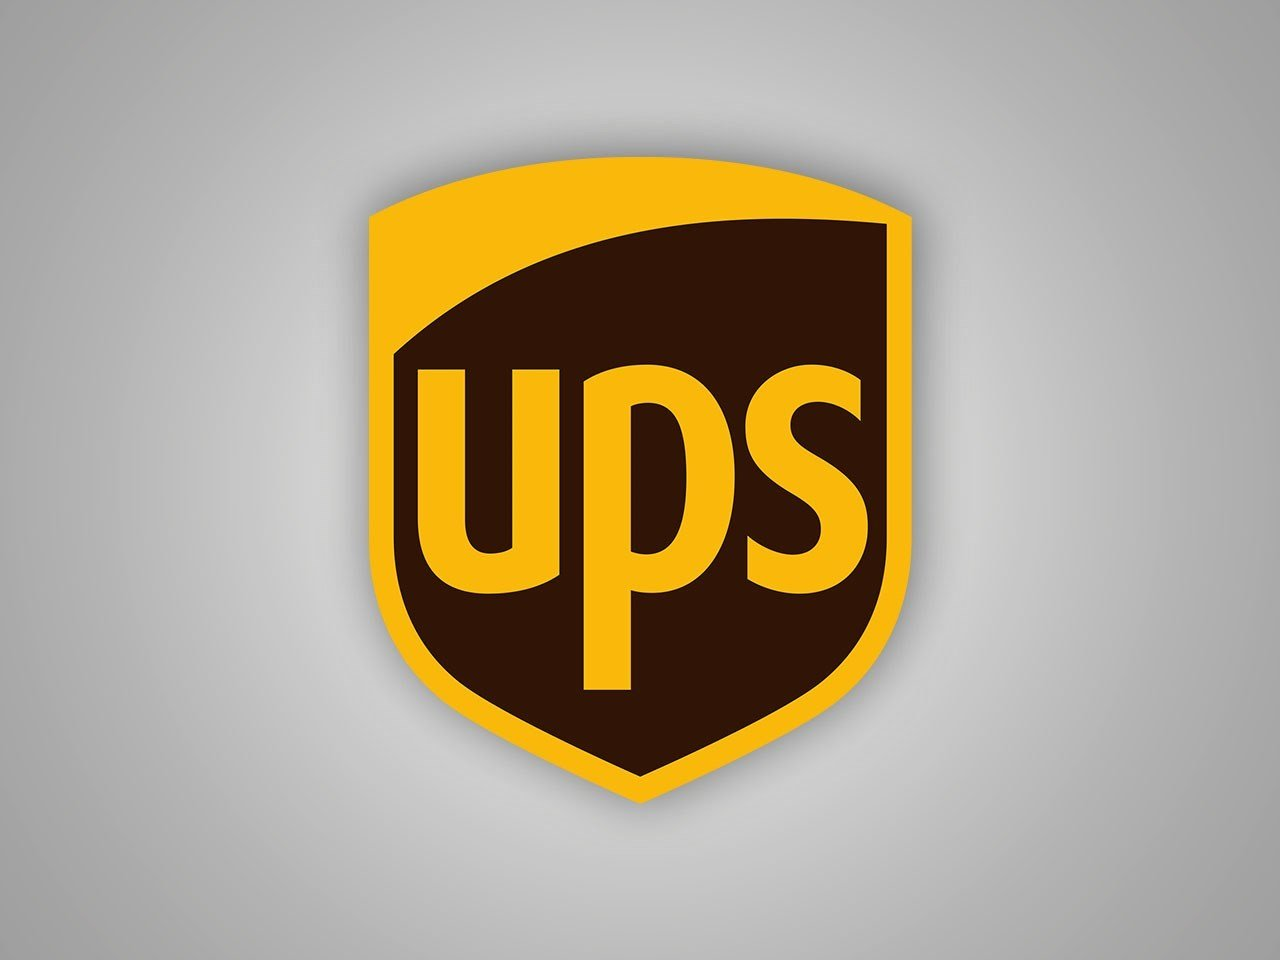 Heavy volume of shipments causes delivery delays for UPS